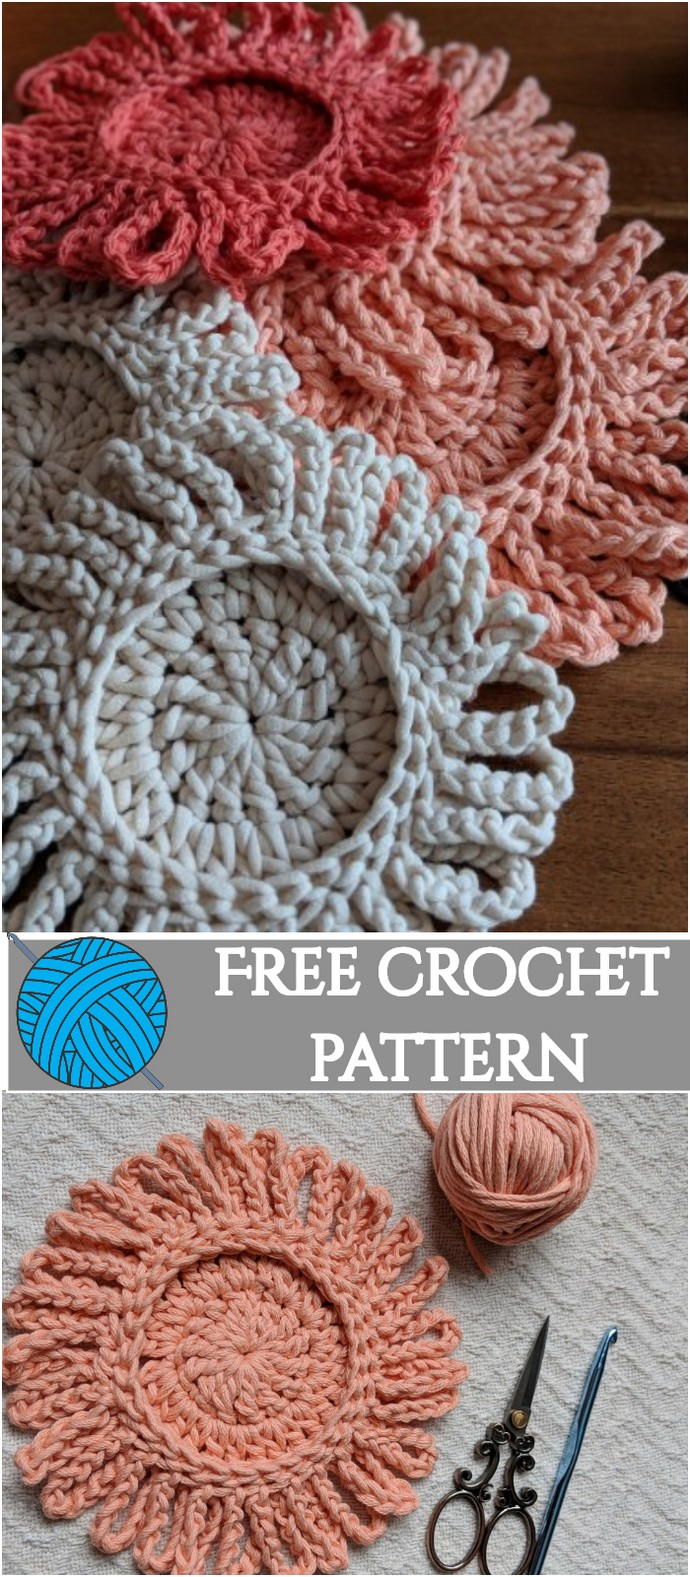 Crochet Coasters Free Pattern Diy Daisy Coasters